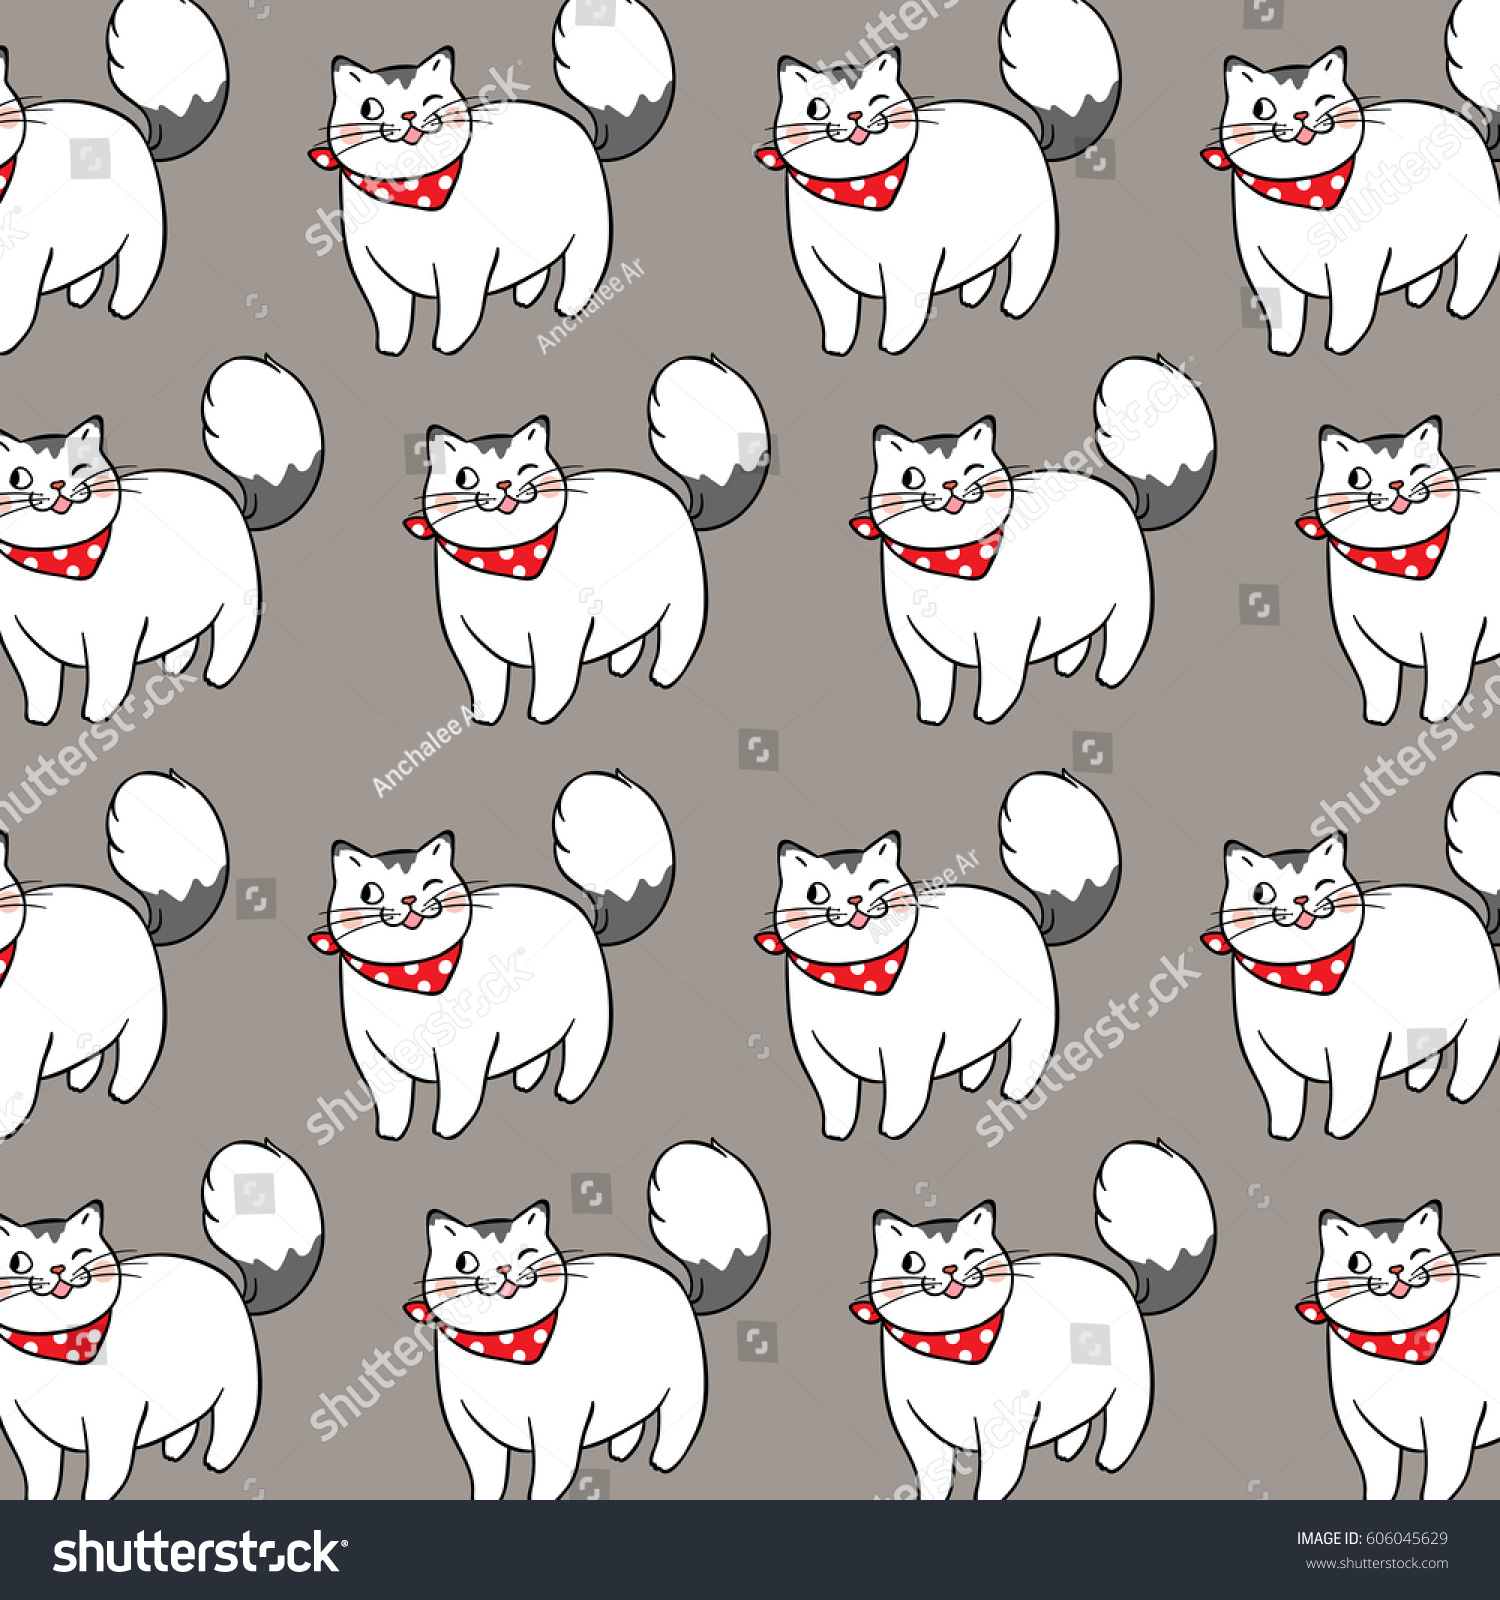 Amazing Wolfbear Chubby Adorable Dog - stock-vector-vector-pattern-background-design-of-cute-fat-cat-on-gray-color-doodle-style-606045629  Best Photo Reference_177950  .jpg